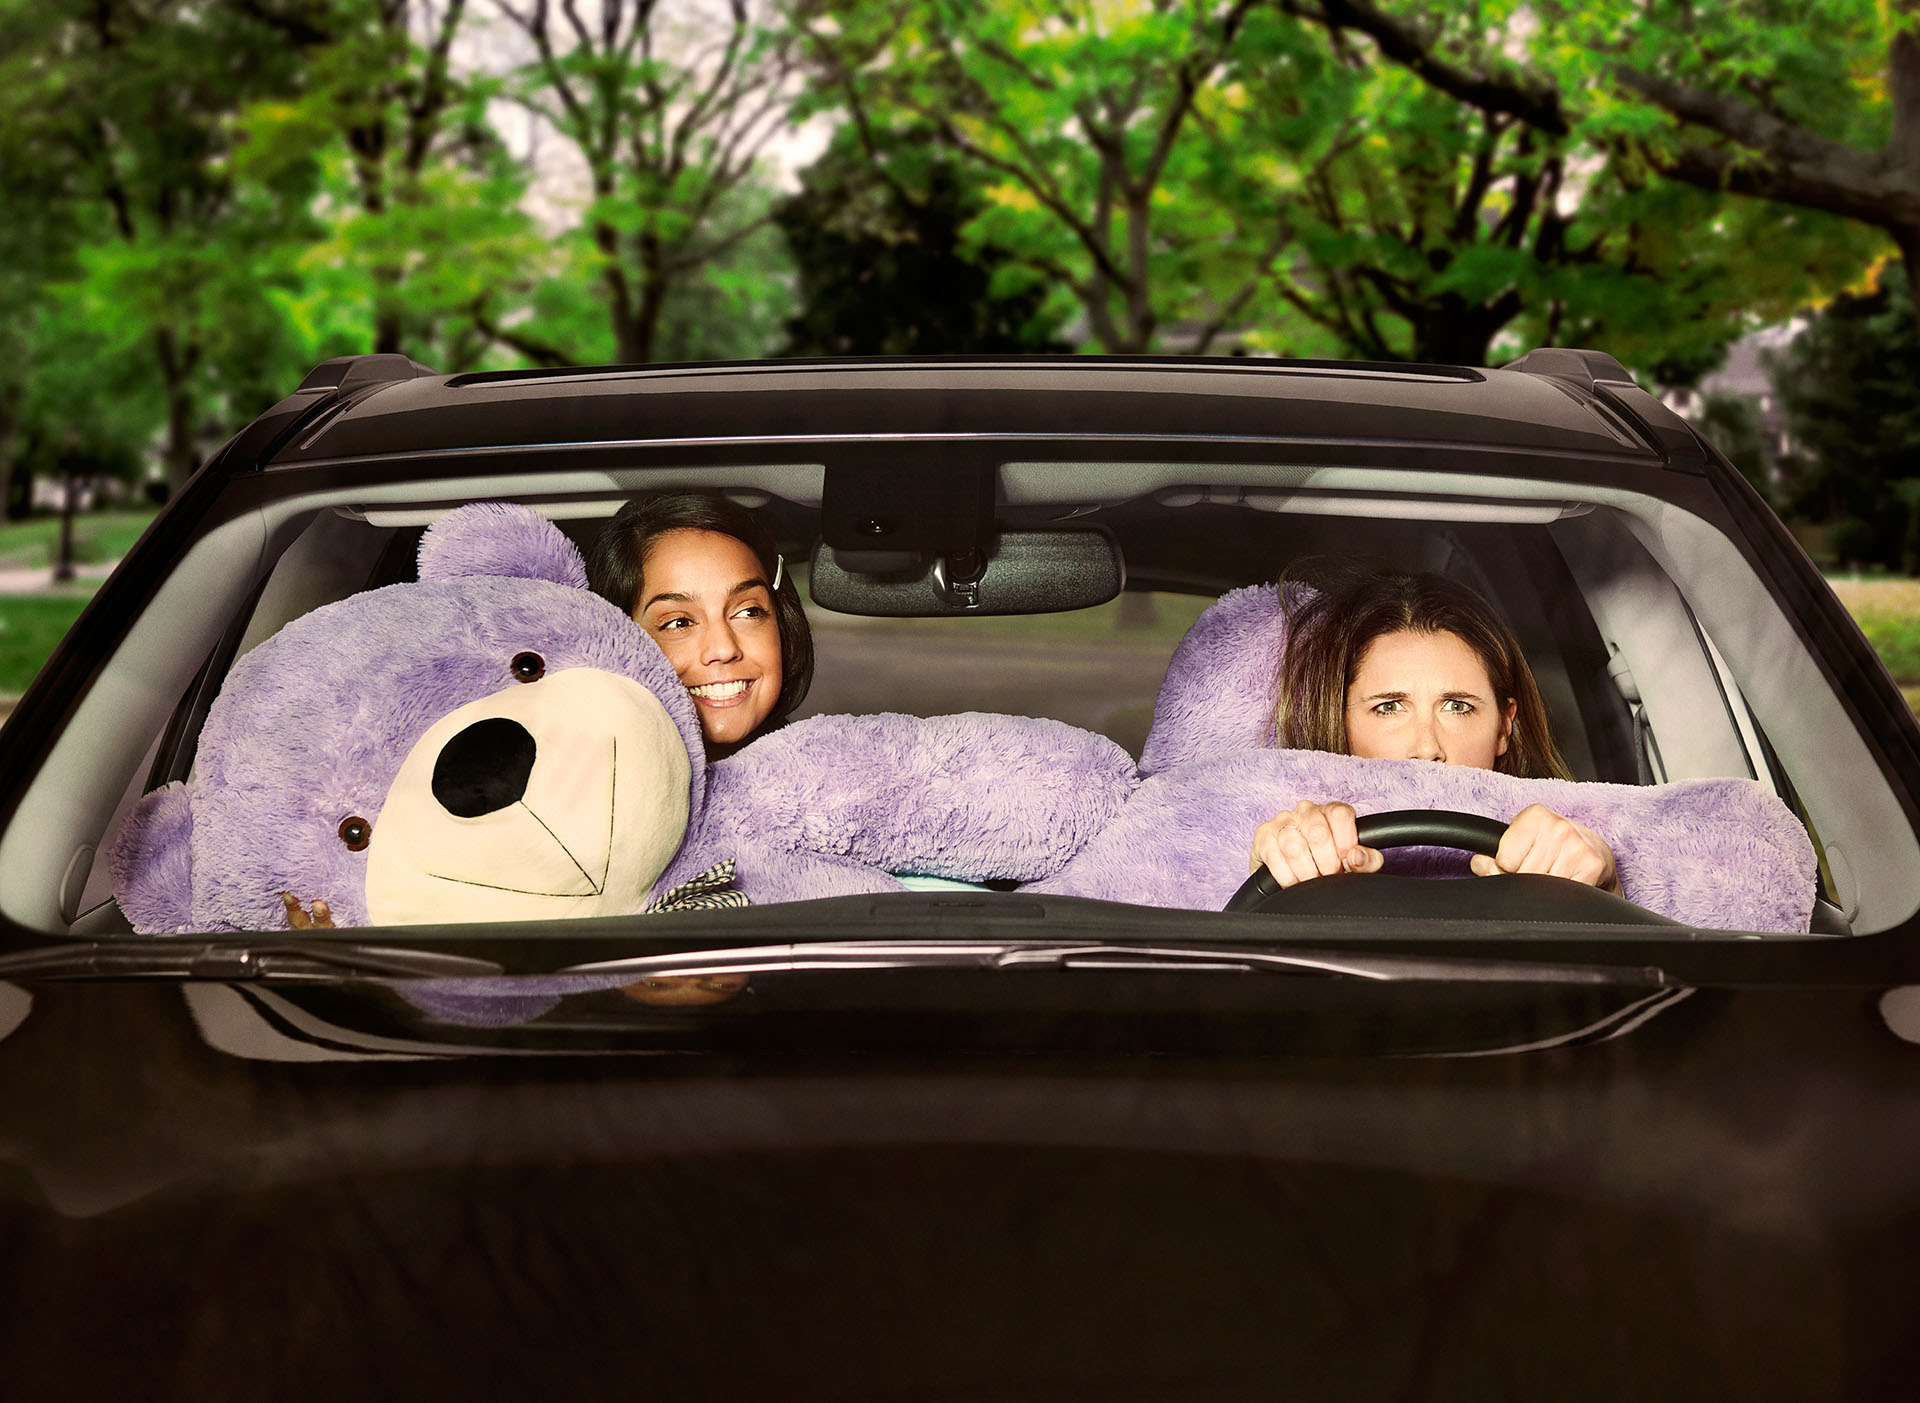 two girls in car with giant purple teddy bear taking up all the space and annoying the driver by Jocelyn for Netlift